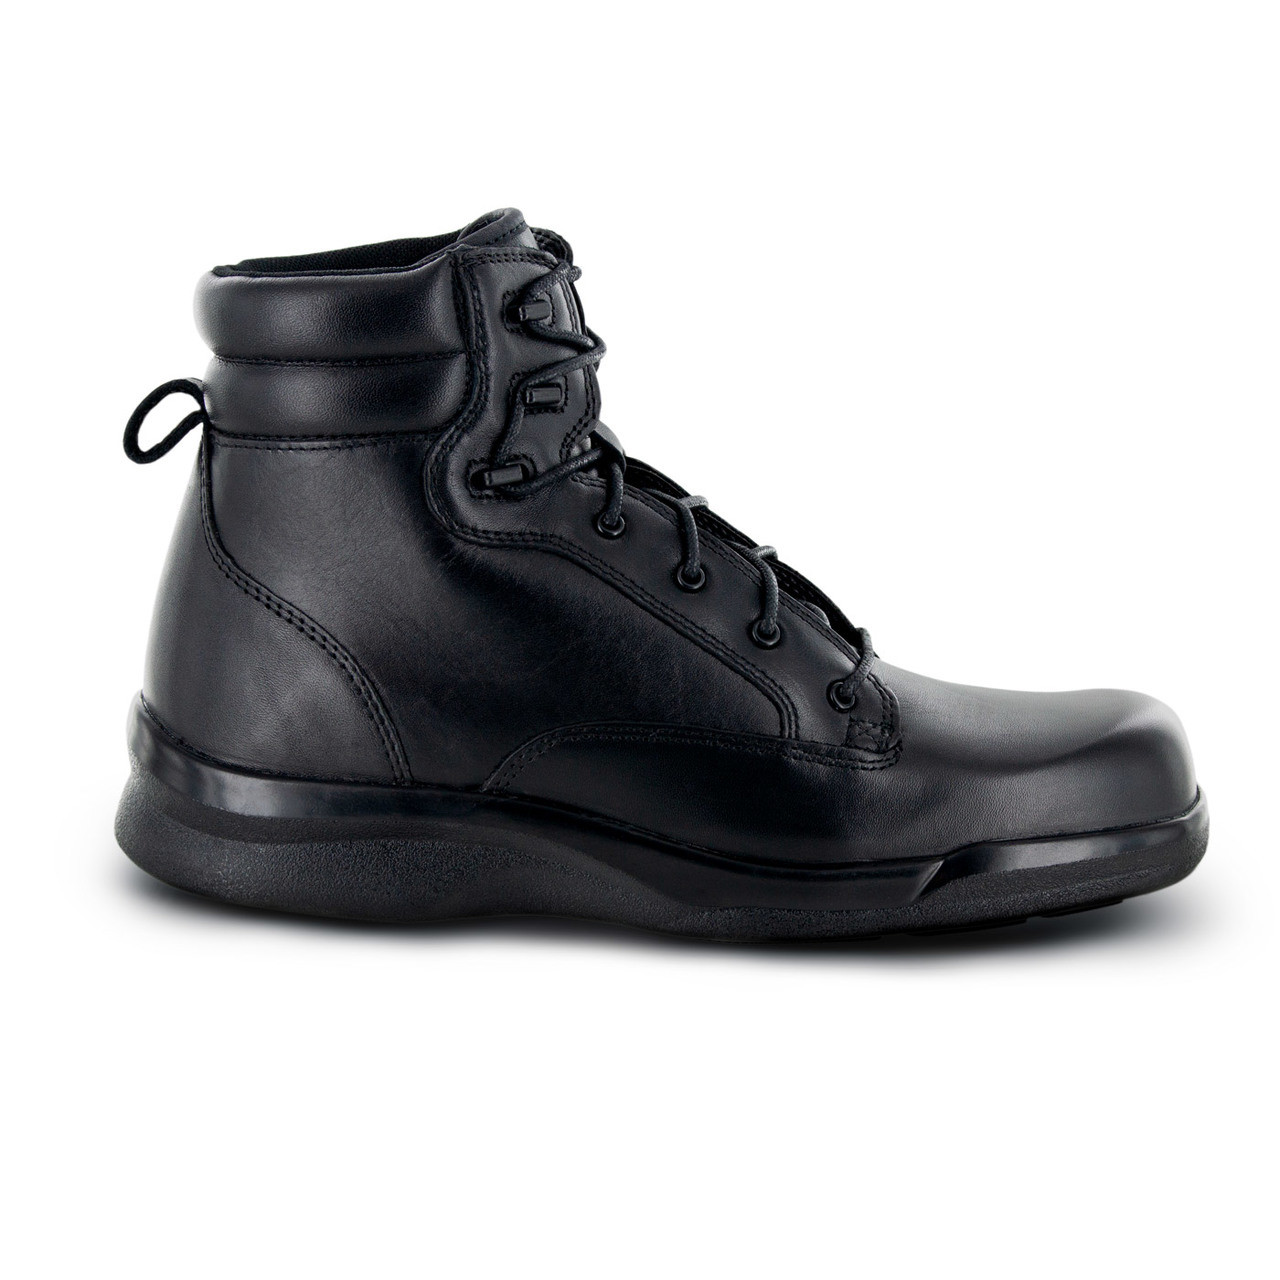 Men's Biomechanical Lace Up Work Boot Black |